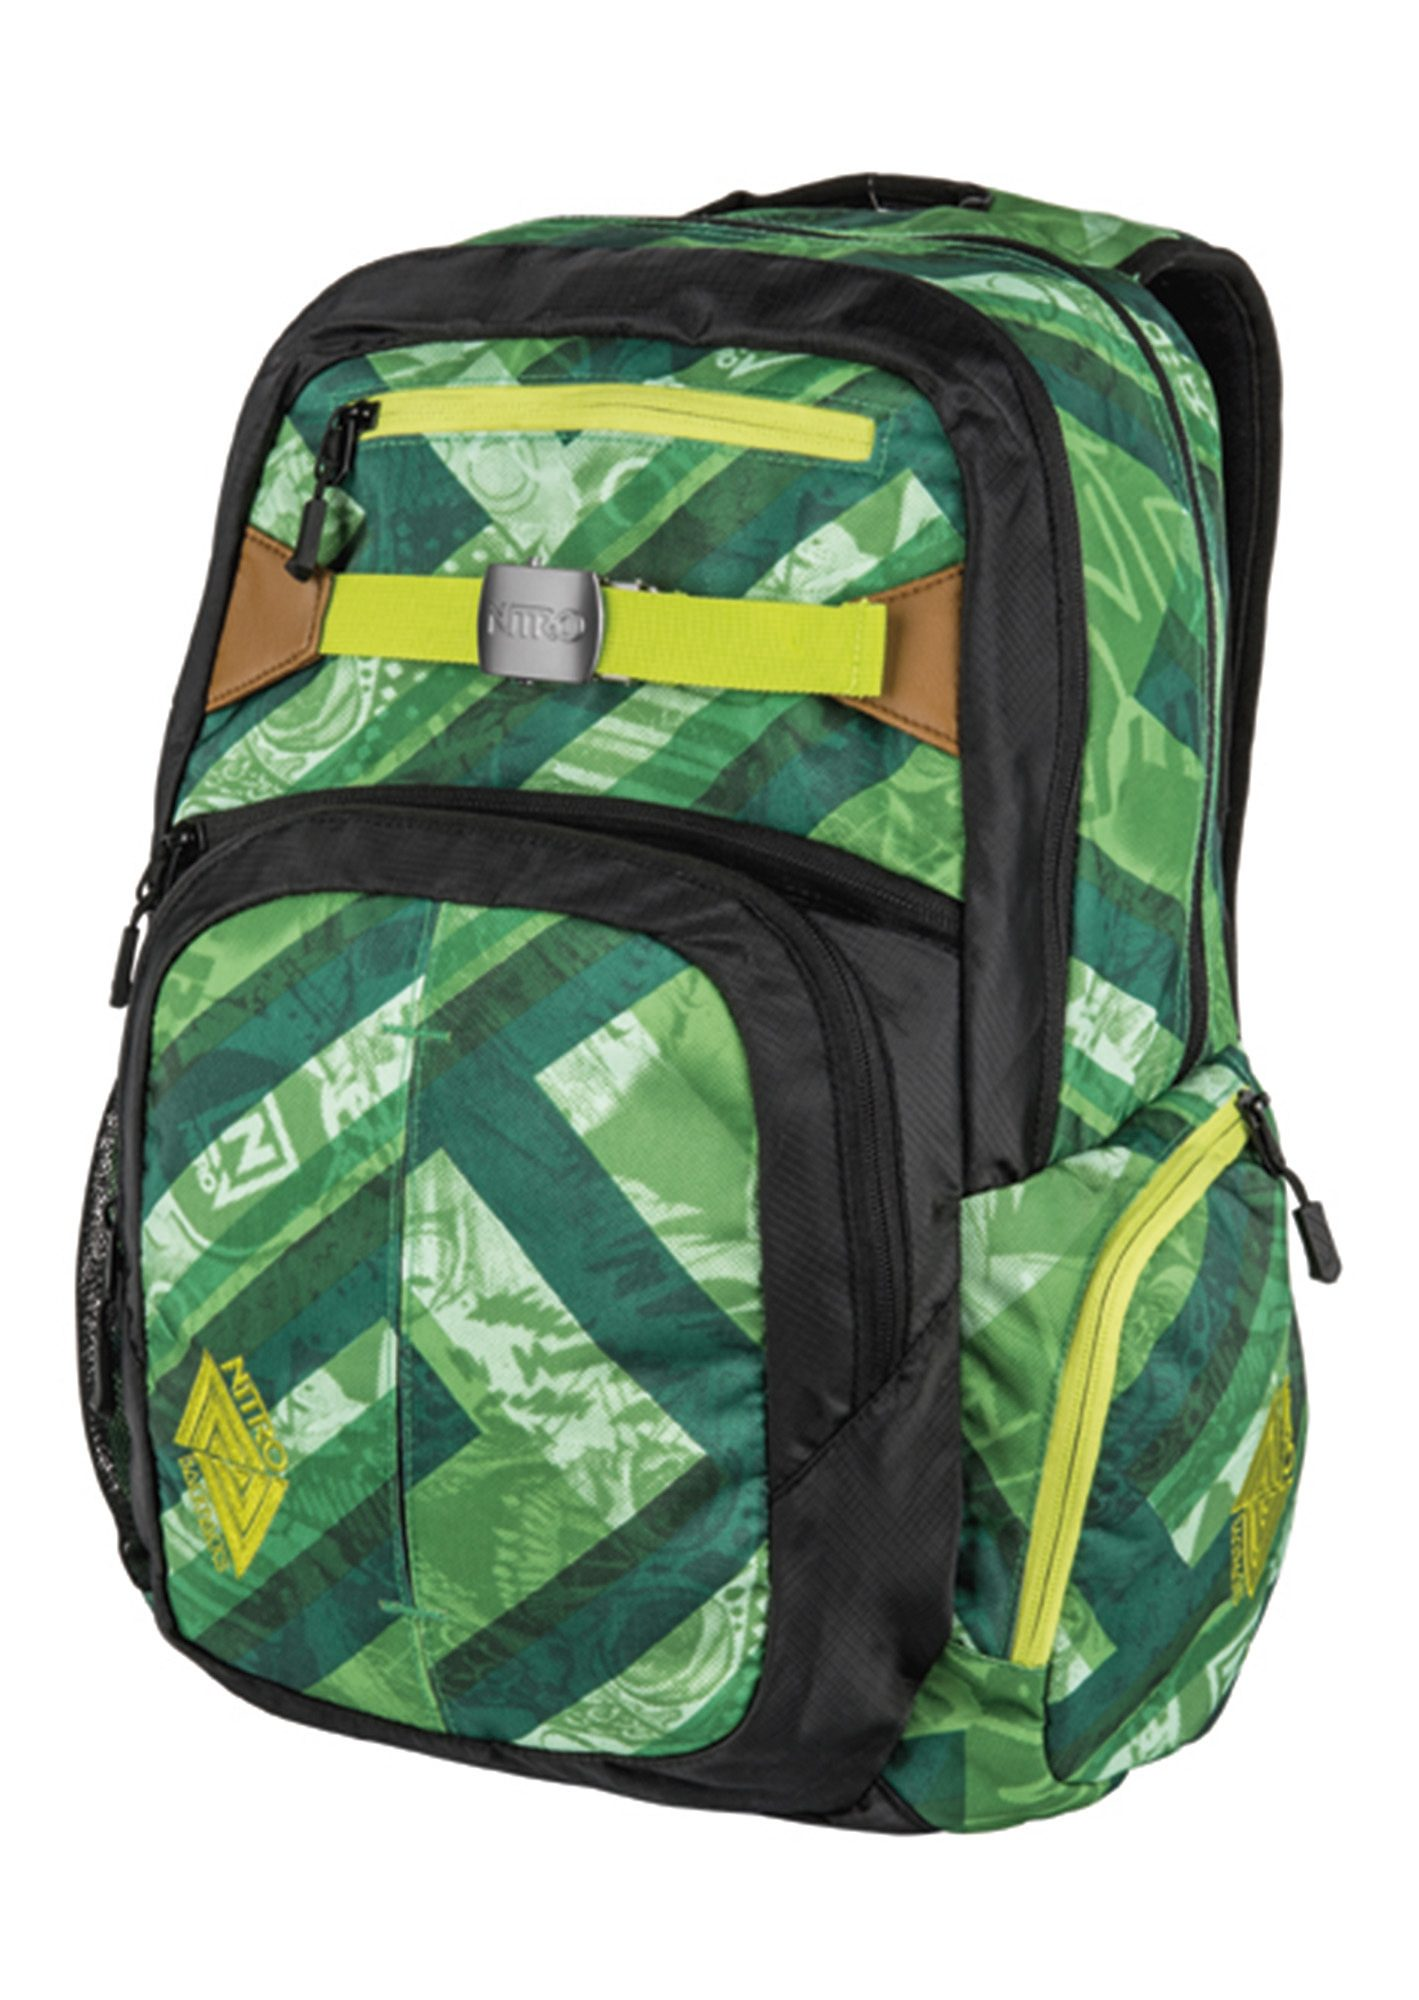 Nitro Schulrucksack, »Hero - Wicked Green«